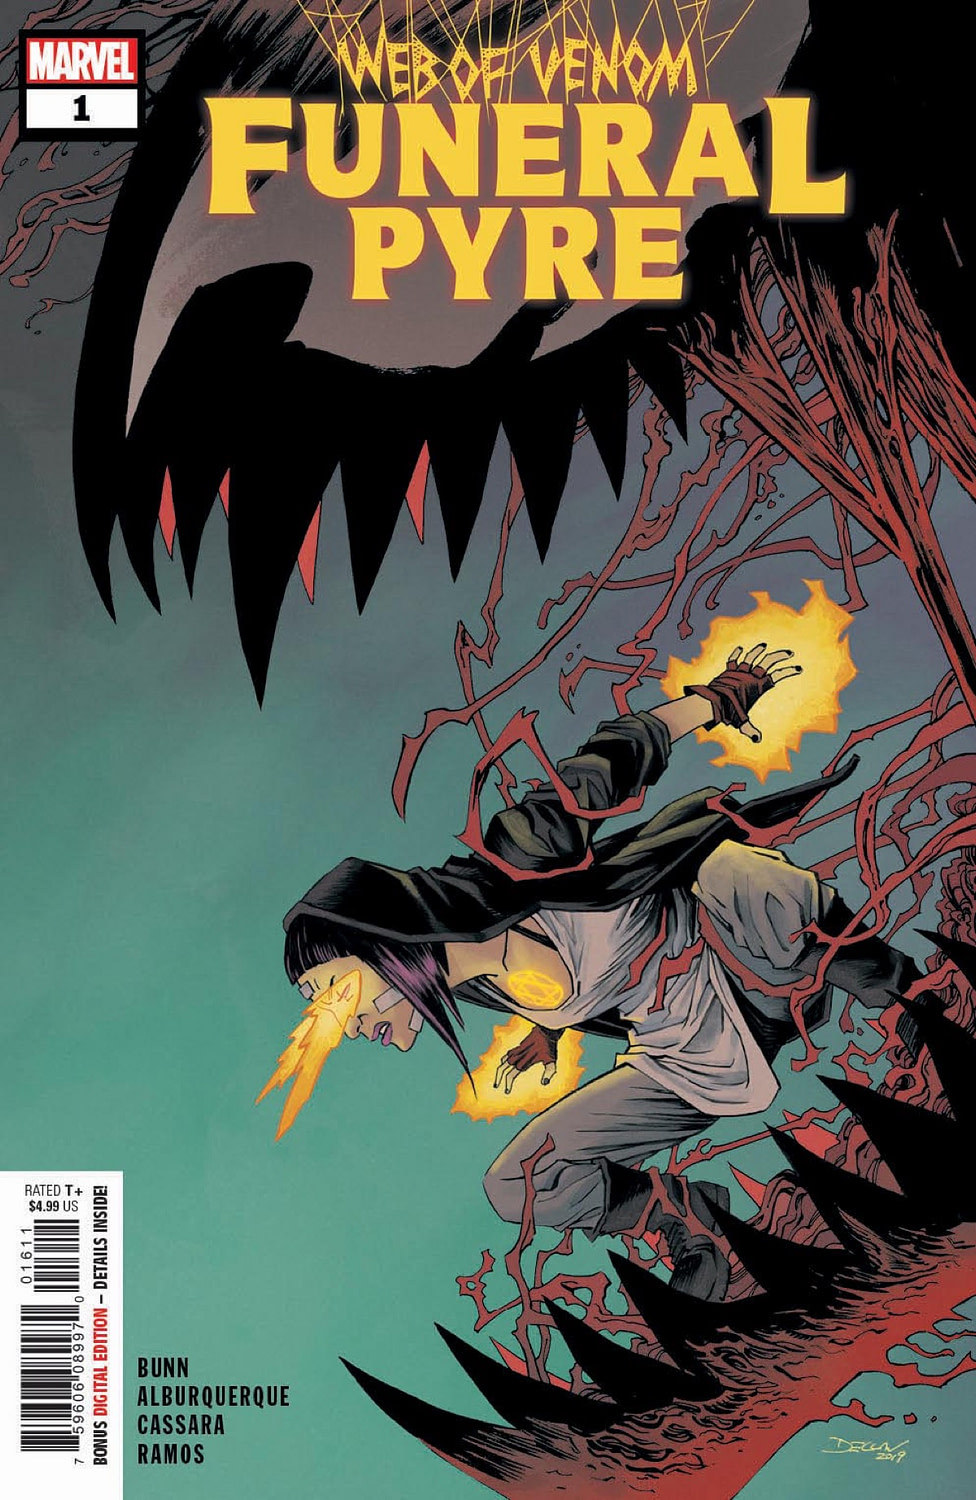 The First Death of Absolute Carnage in Web of Venom: Funeral Pyre #1 First Look